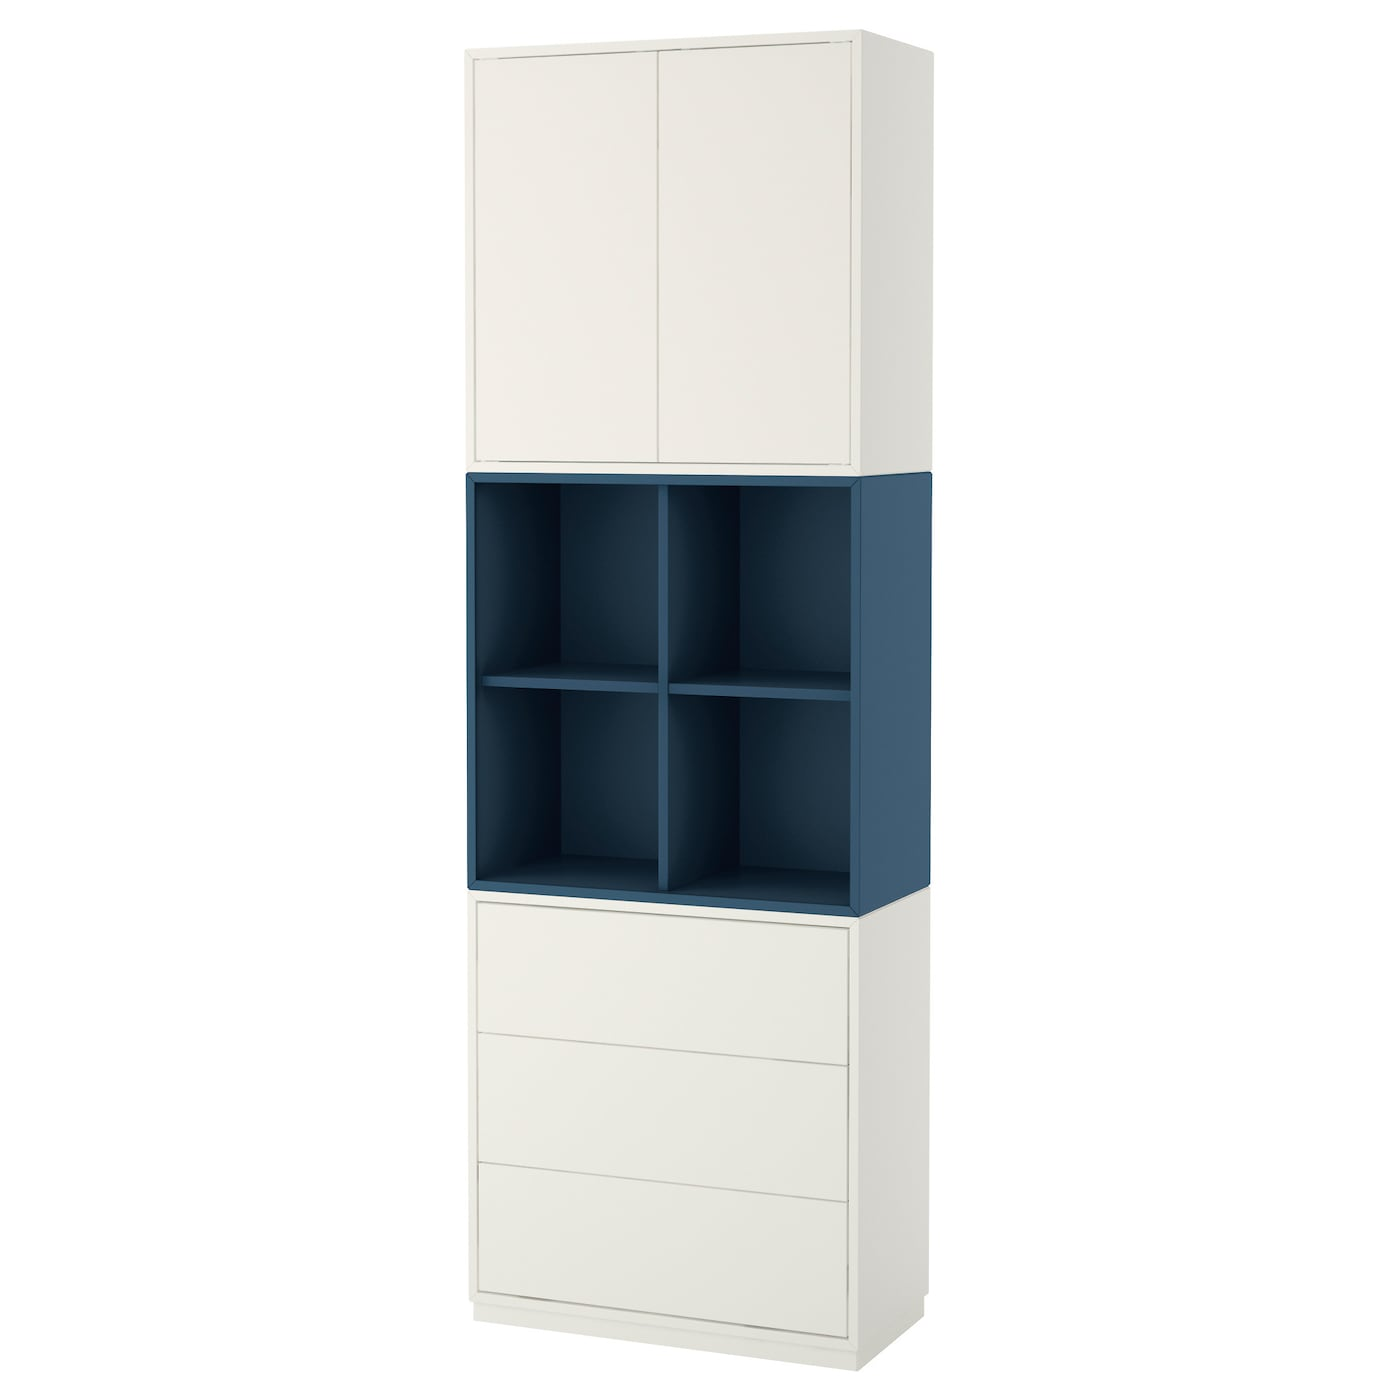 New Shoe Storage Cabinet Ikea